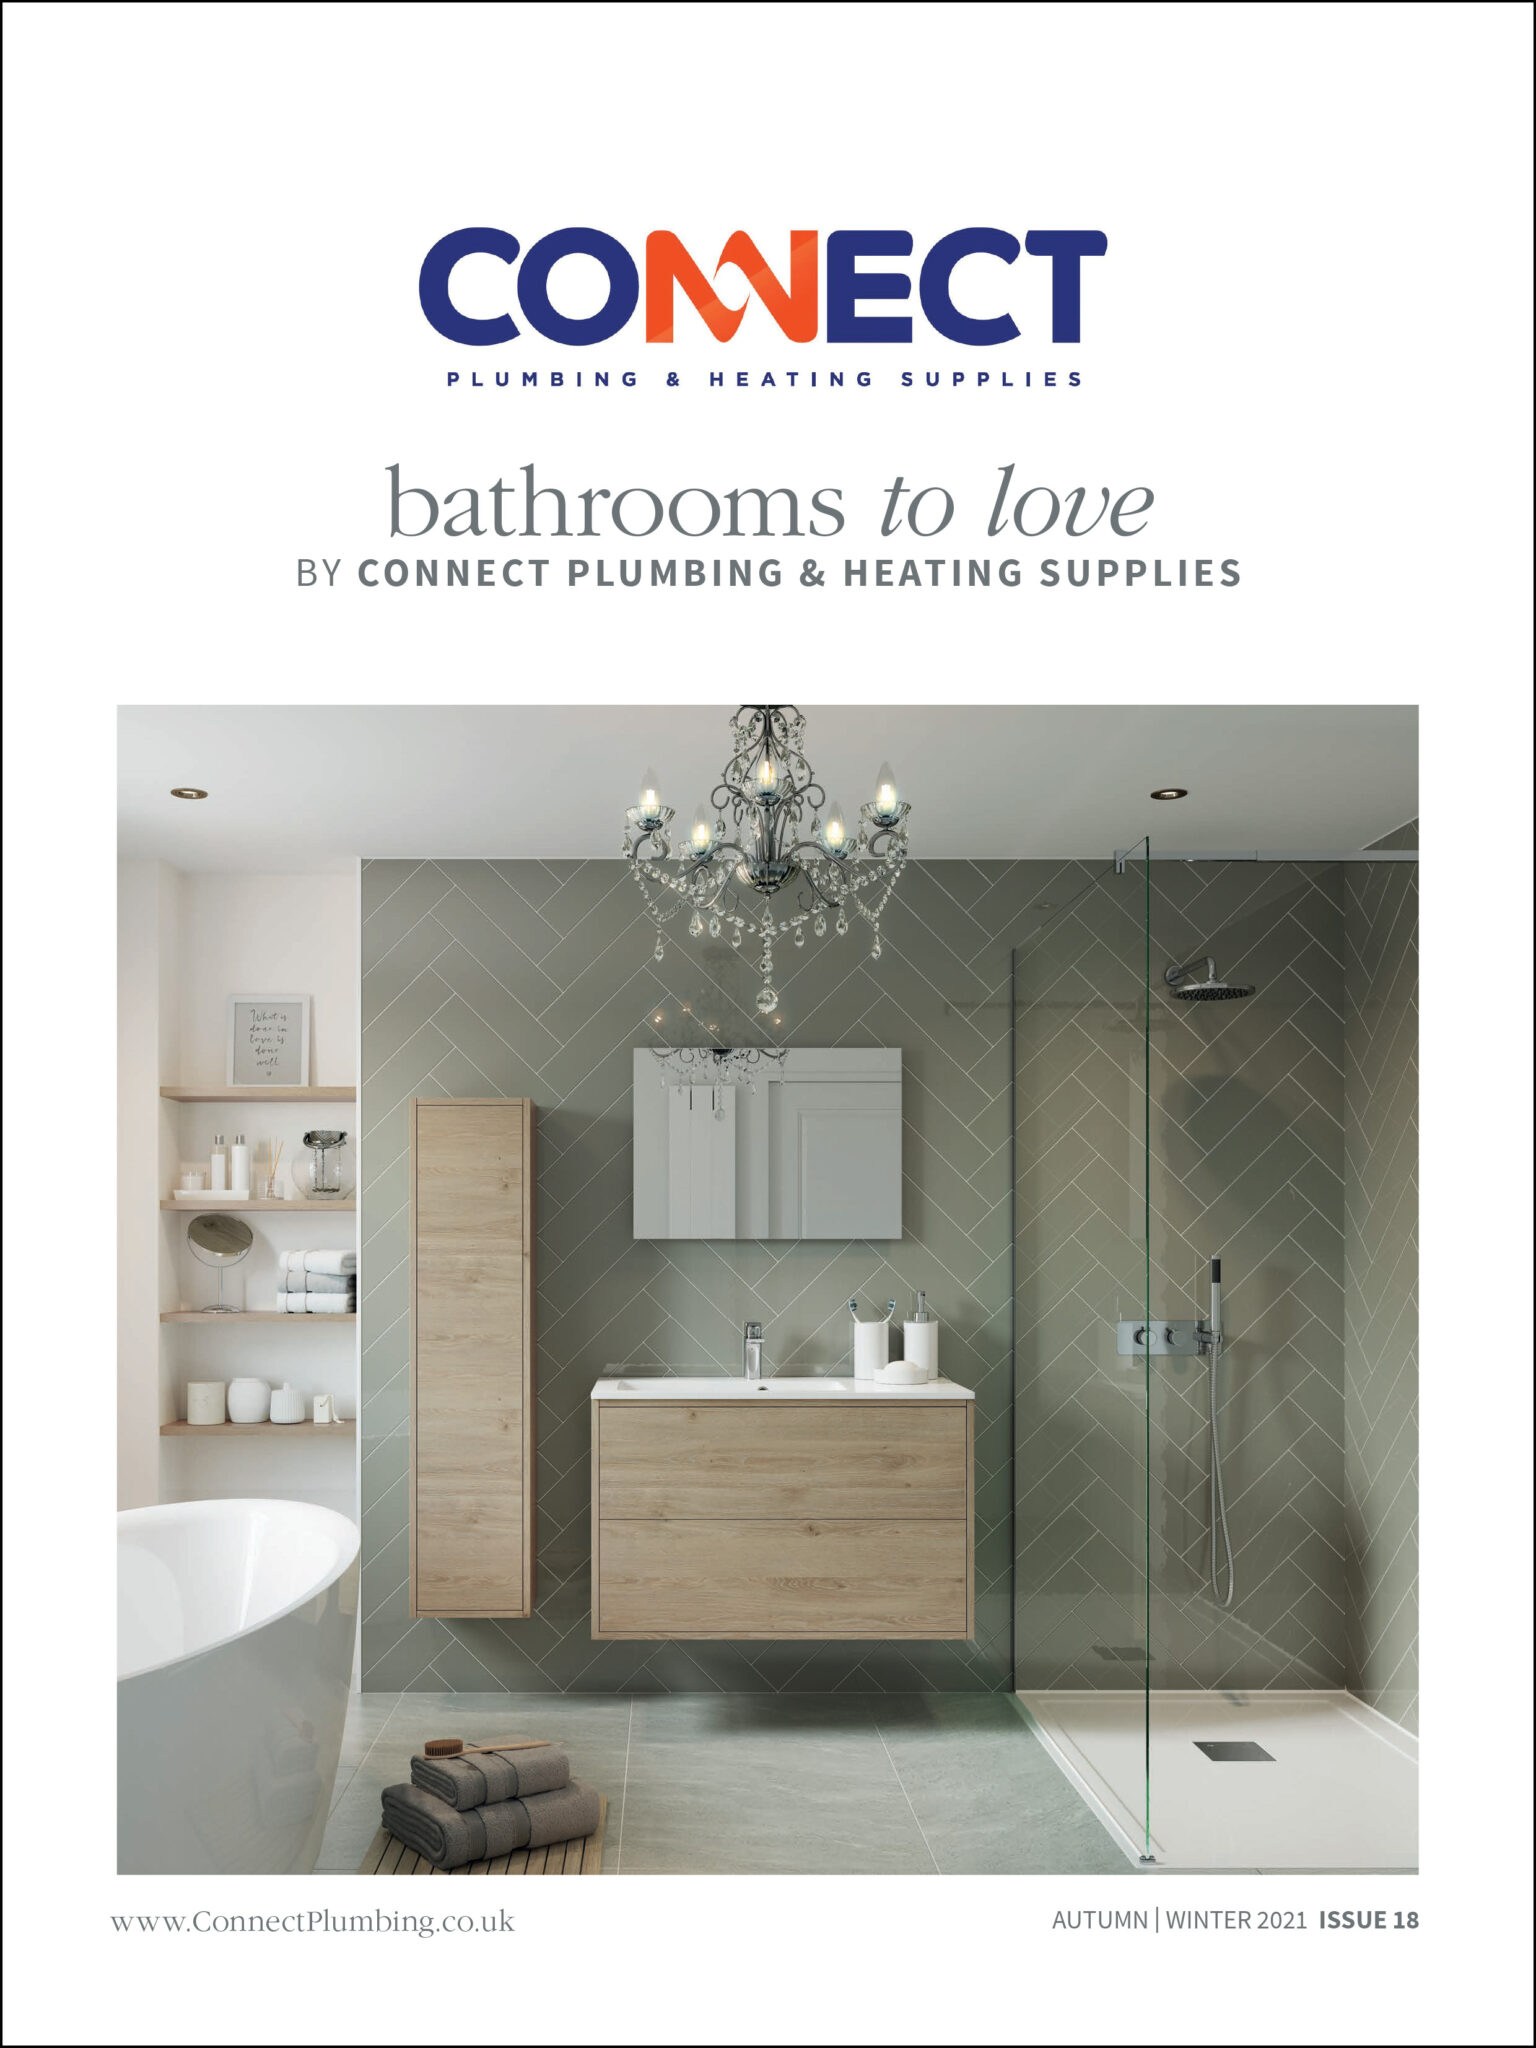 Bathrooms to love